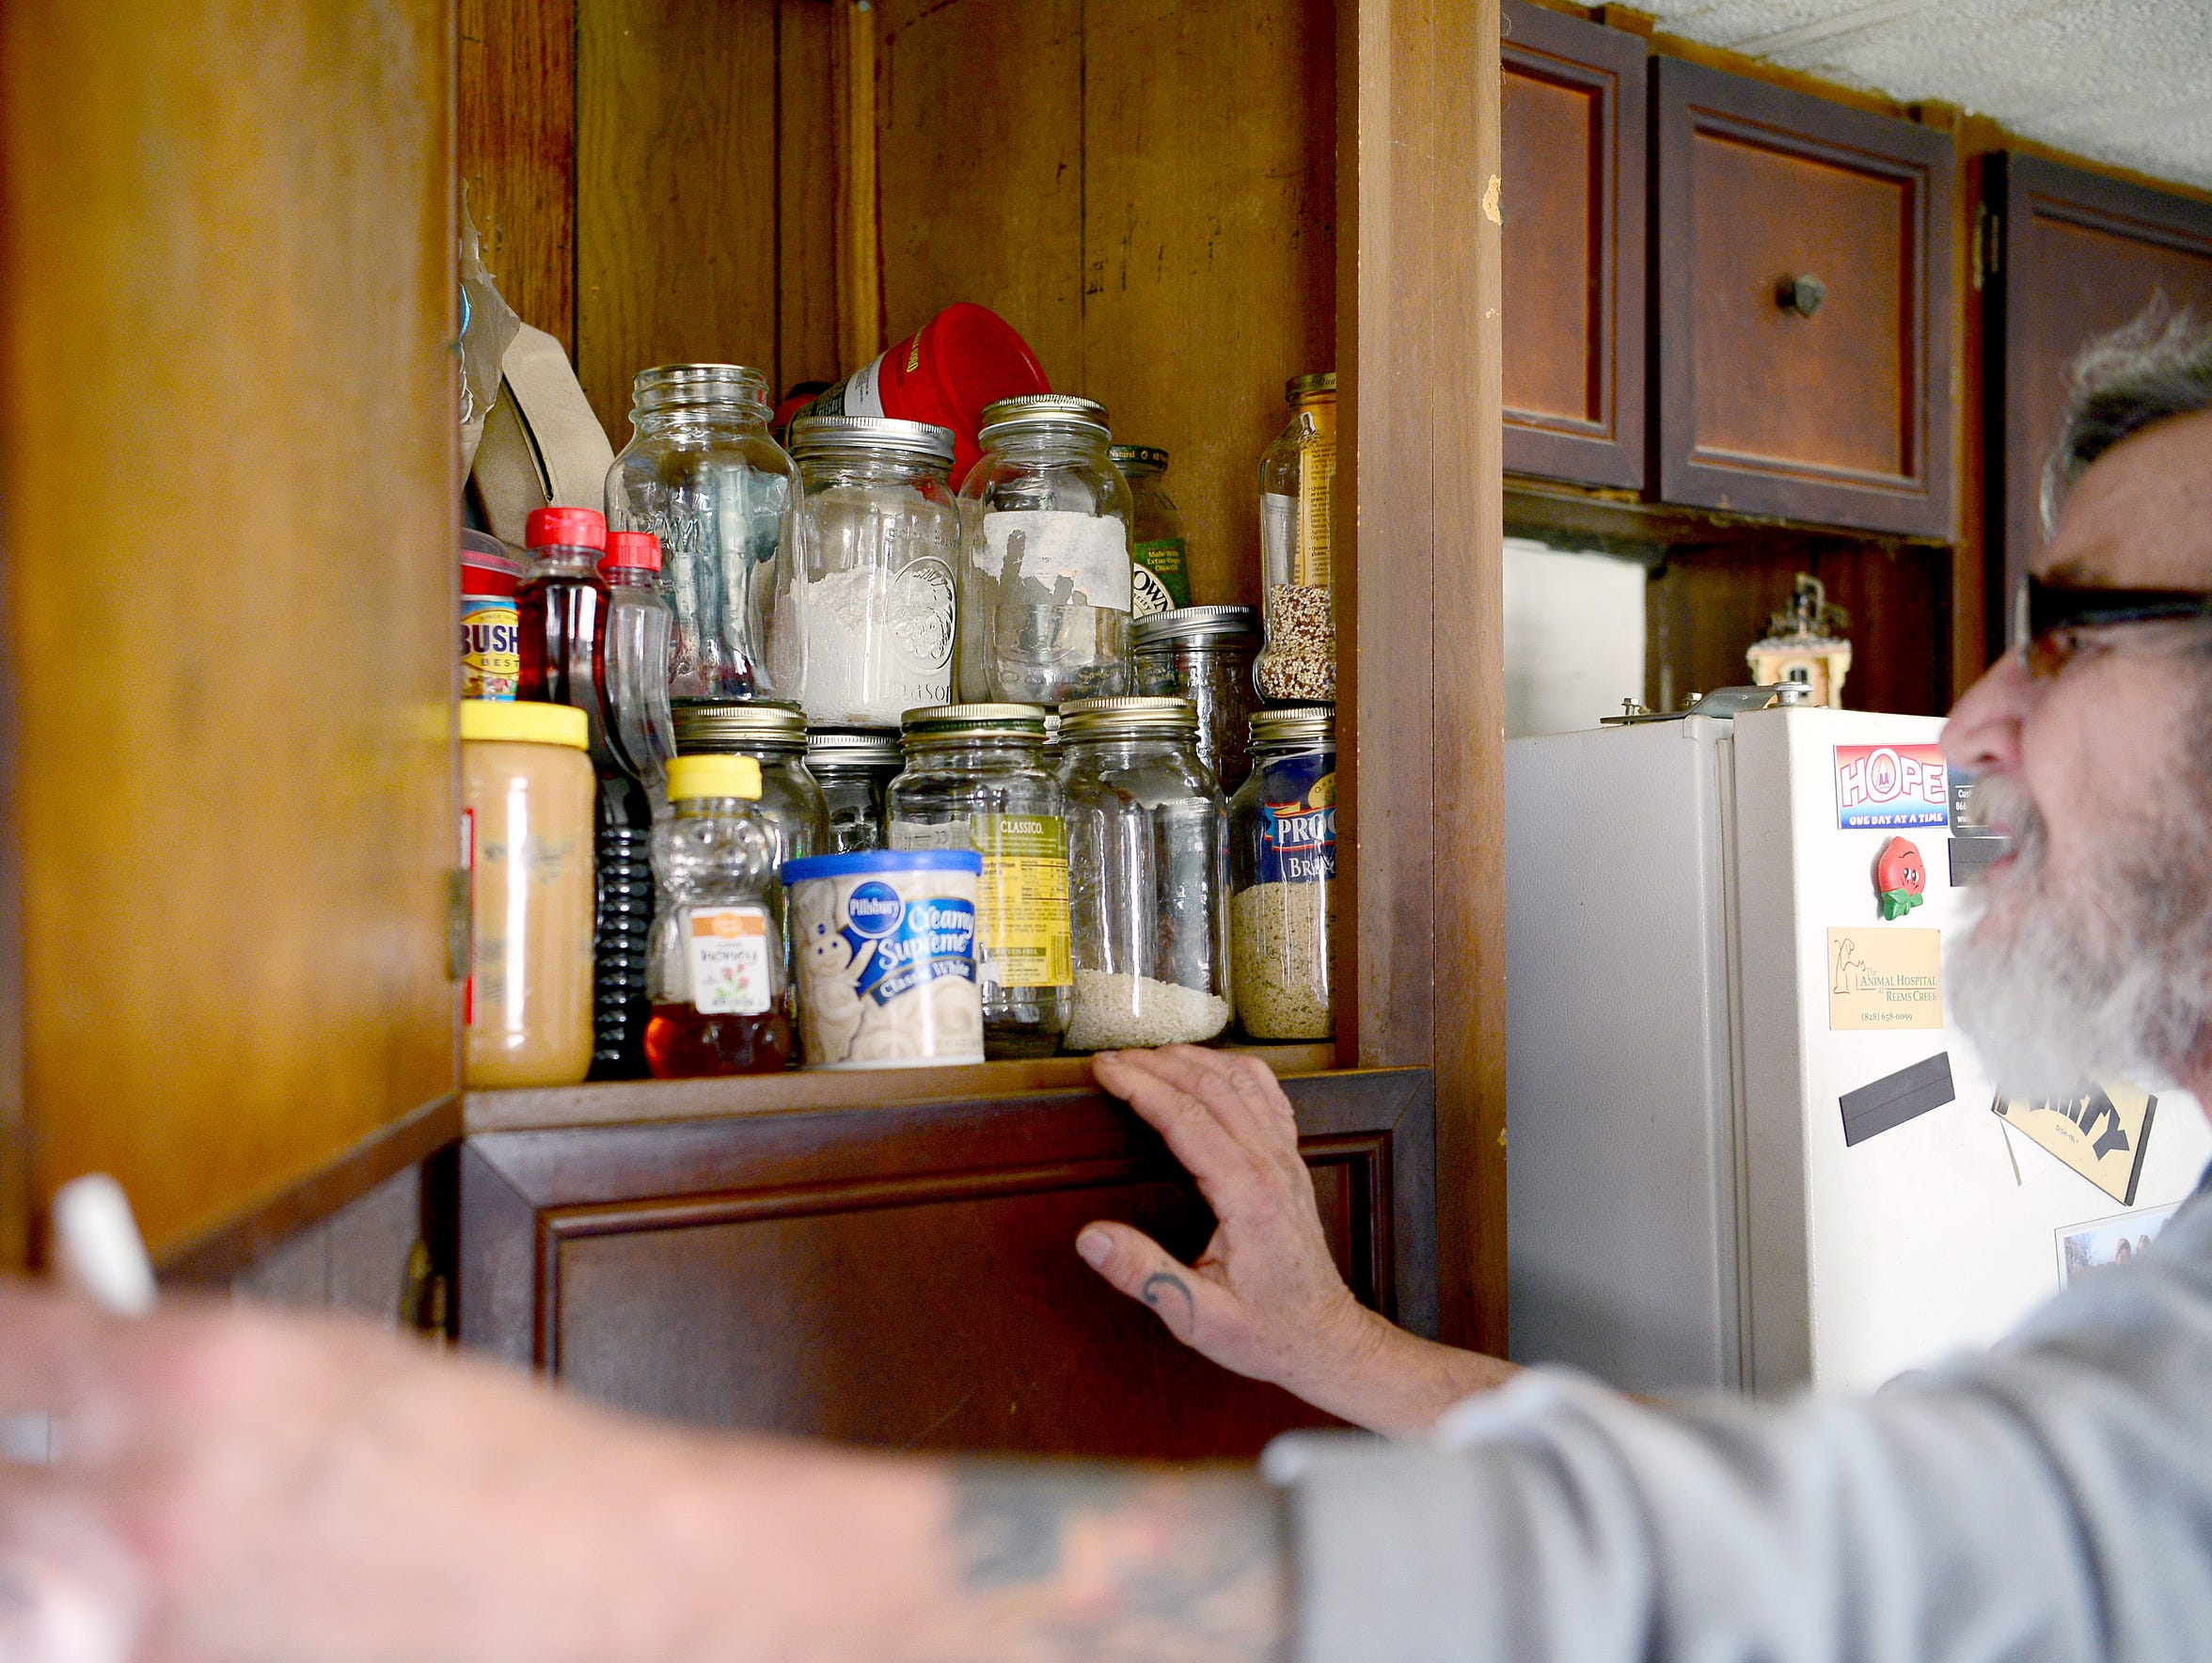 David Cooke shows off his pantry in his home in rural